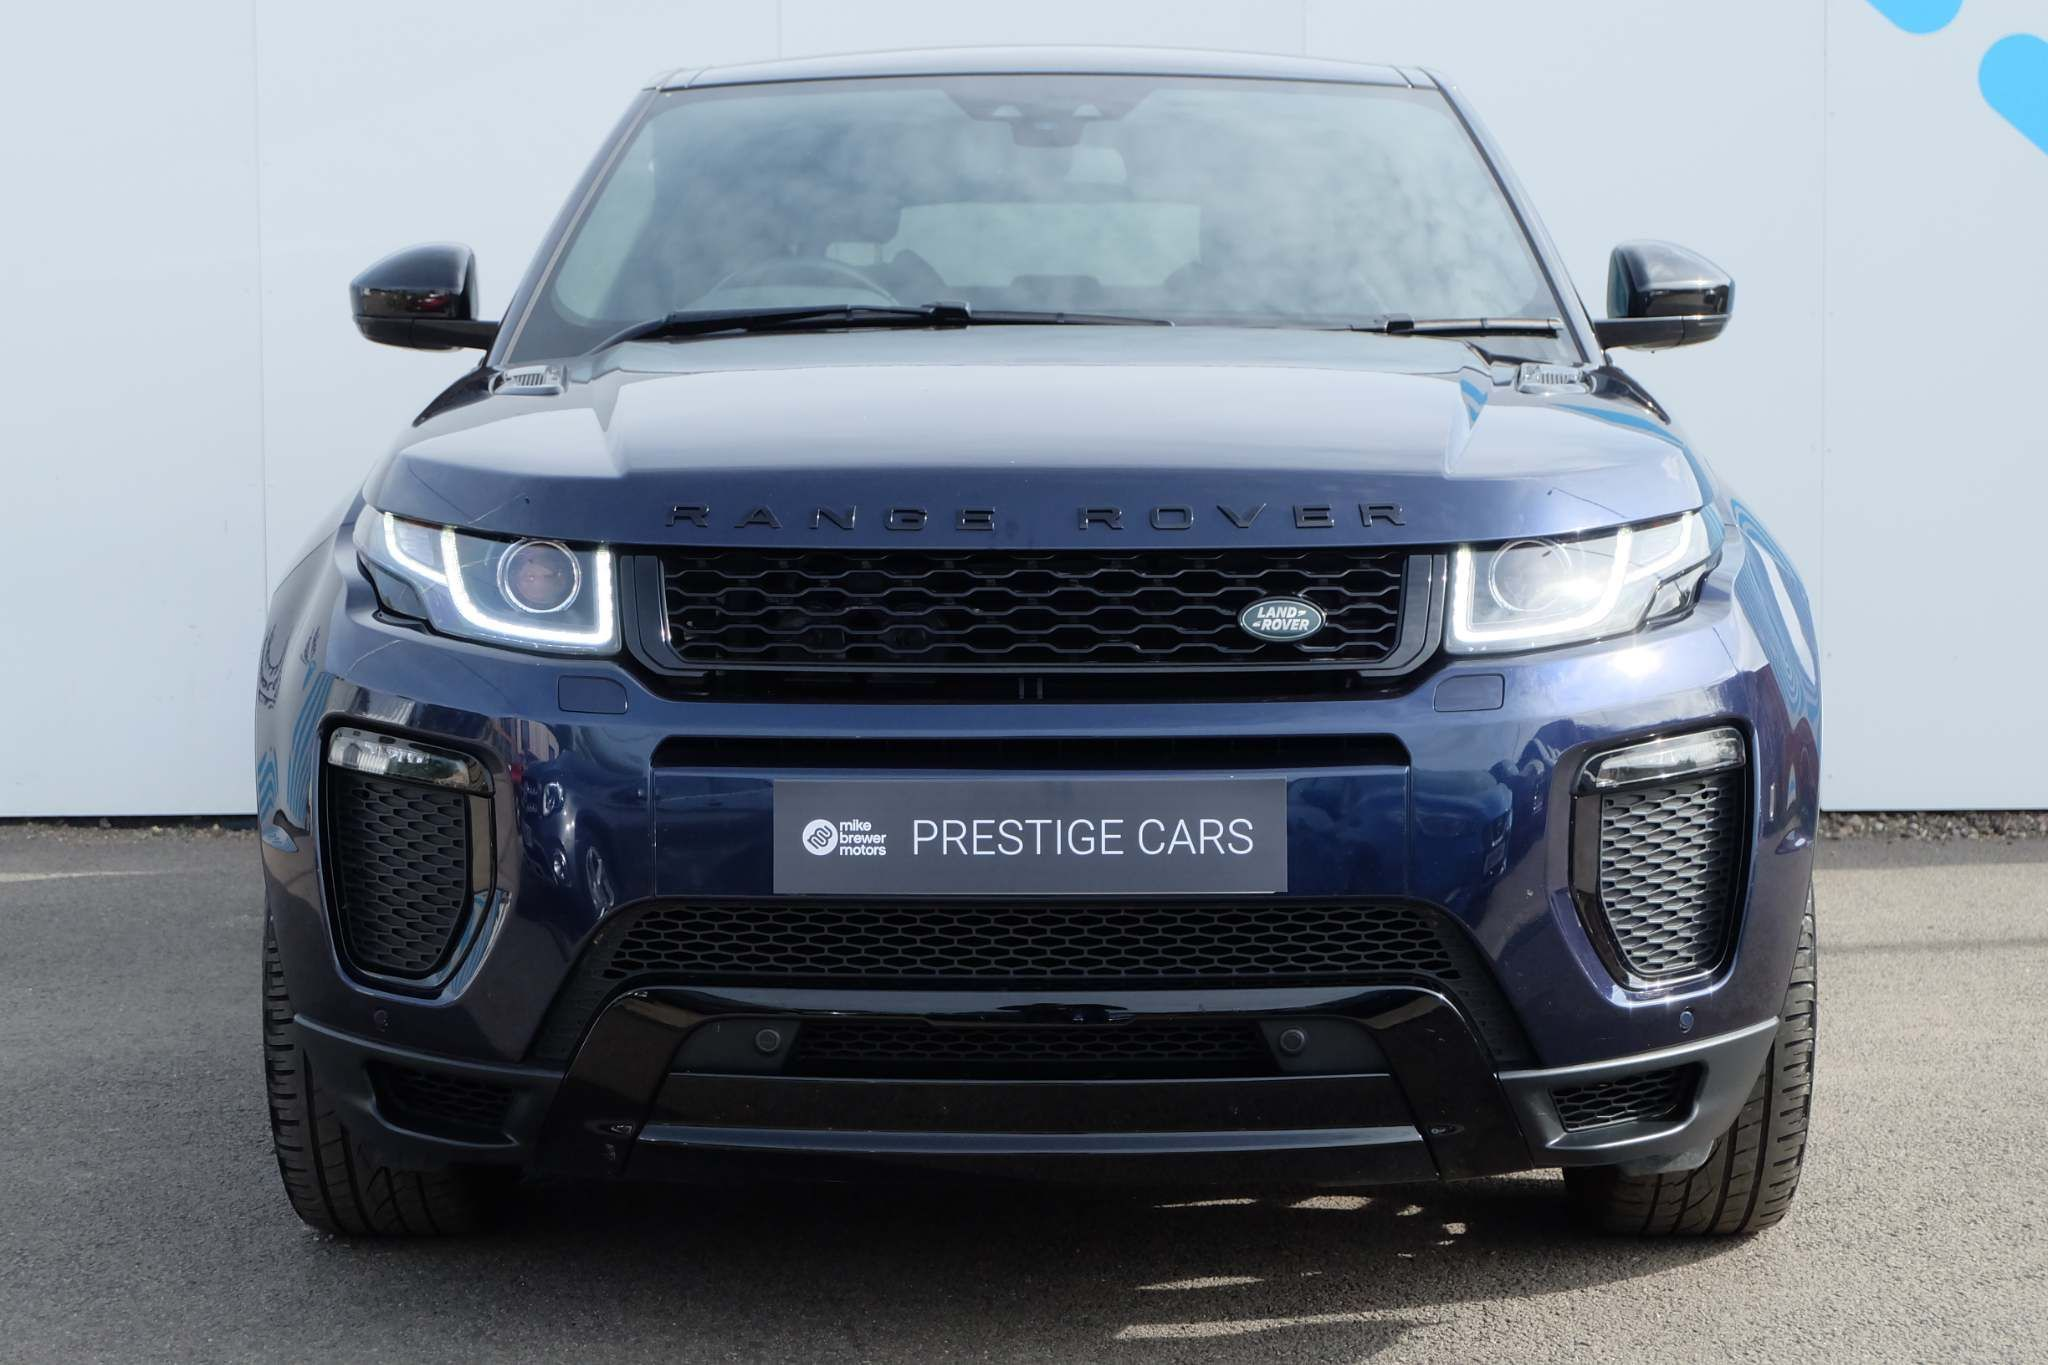 Used Land Rover Range Rover Evoque 2.0 Td4 Hse Dynamic Auto 4wd (s/s) 5dr